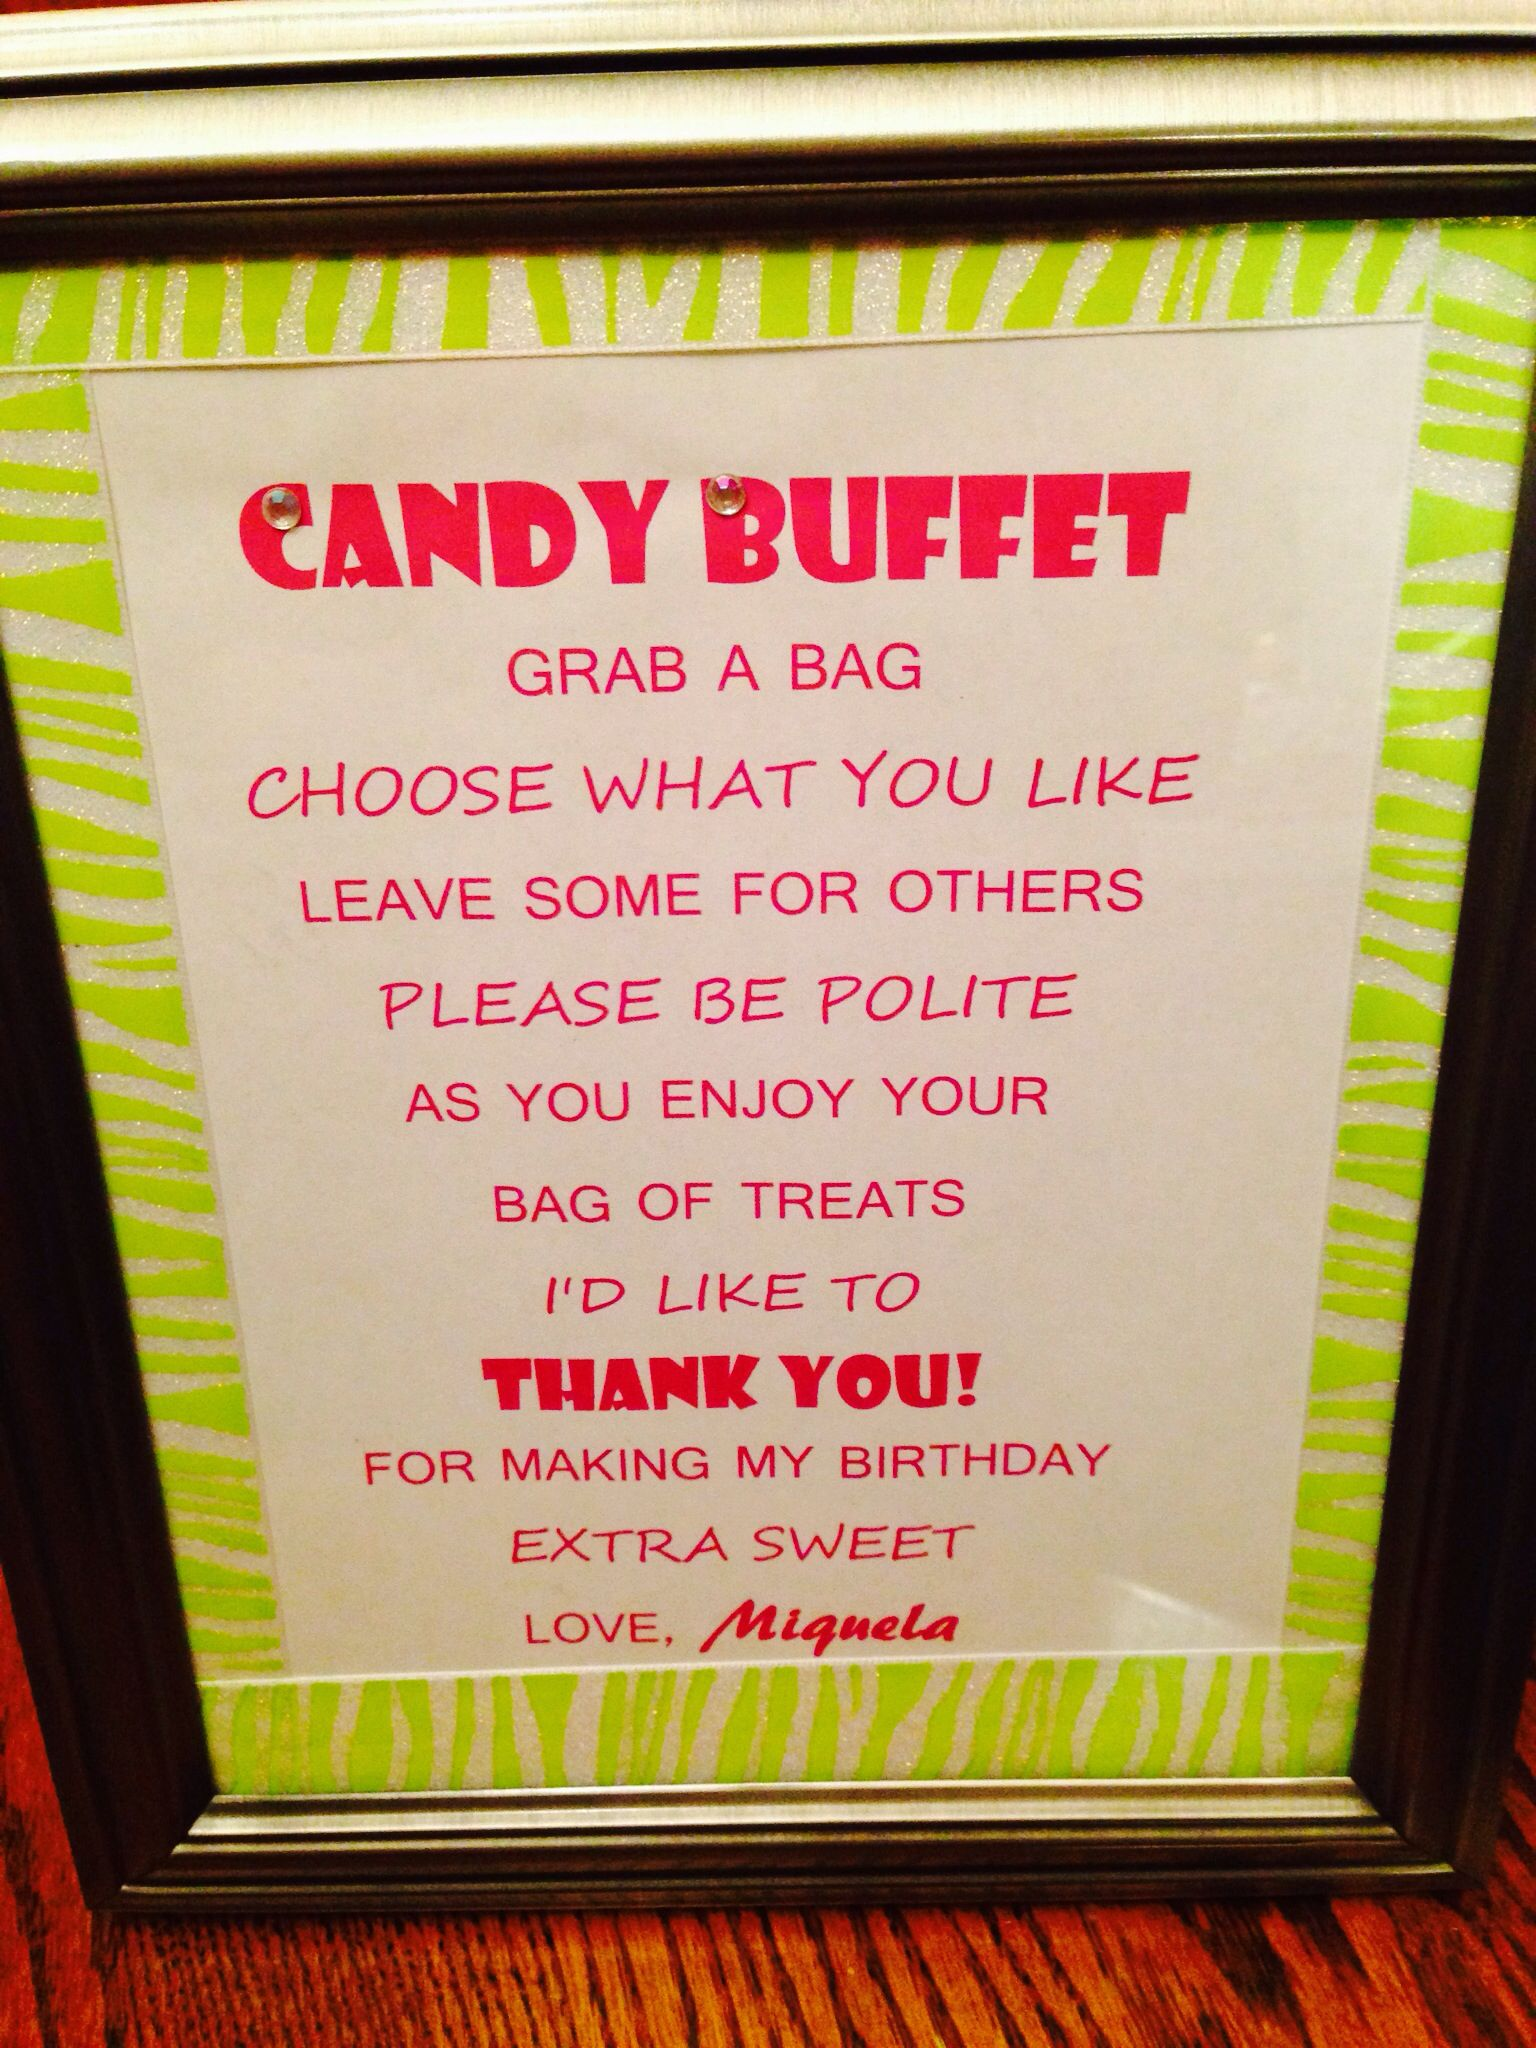 Candy Buffet | Sweet 16 Ideas | Pinterest | Buffet, Sweet 16 and ...